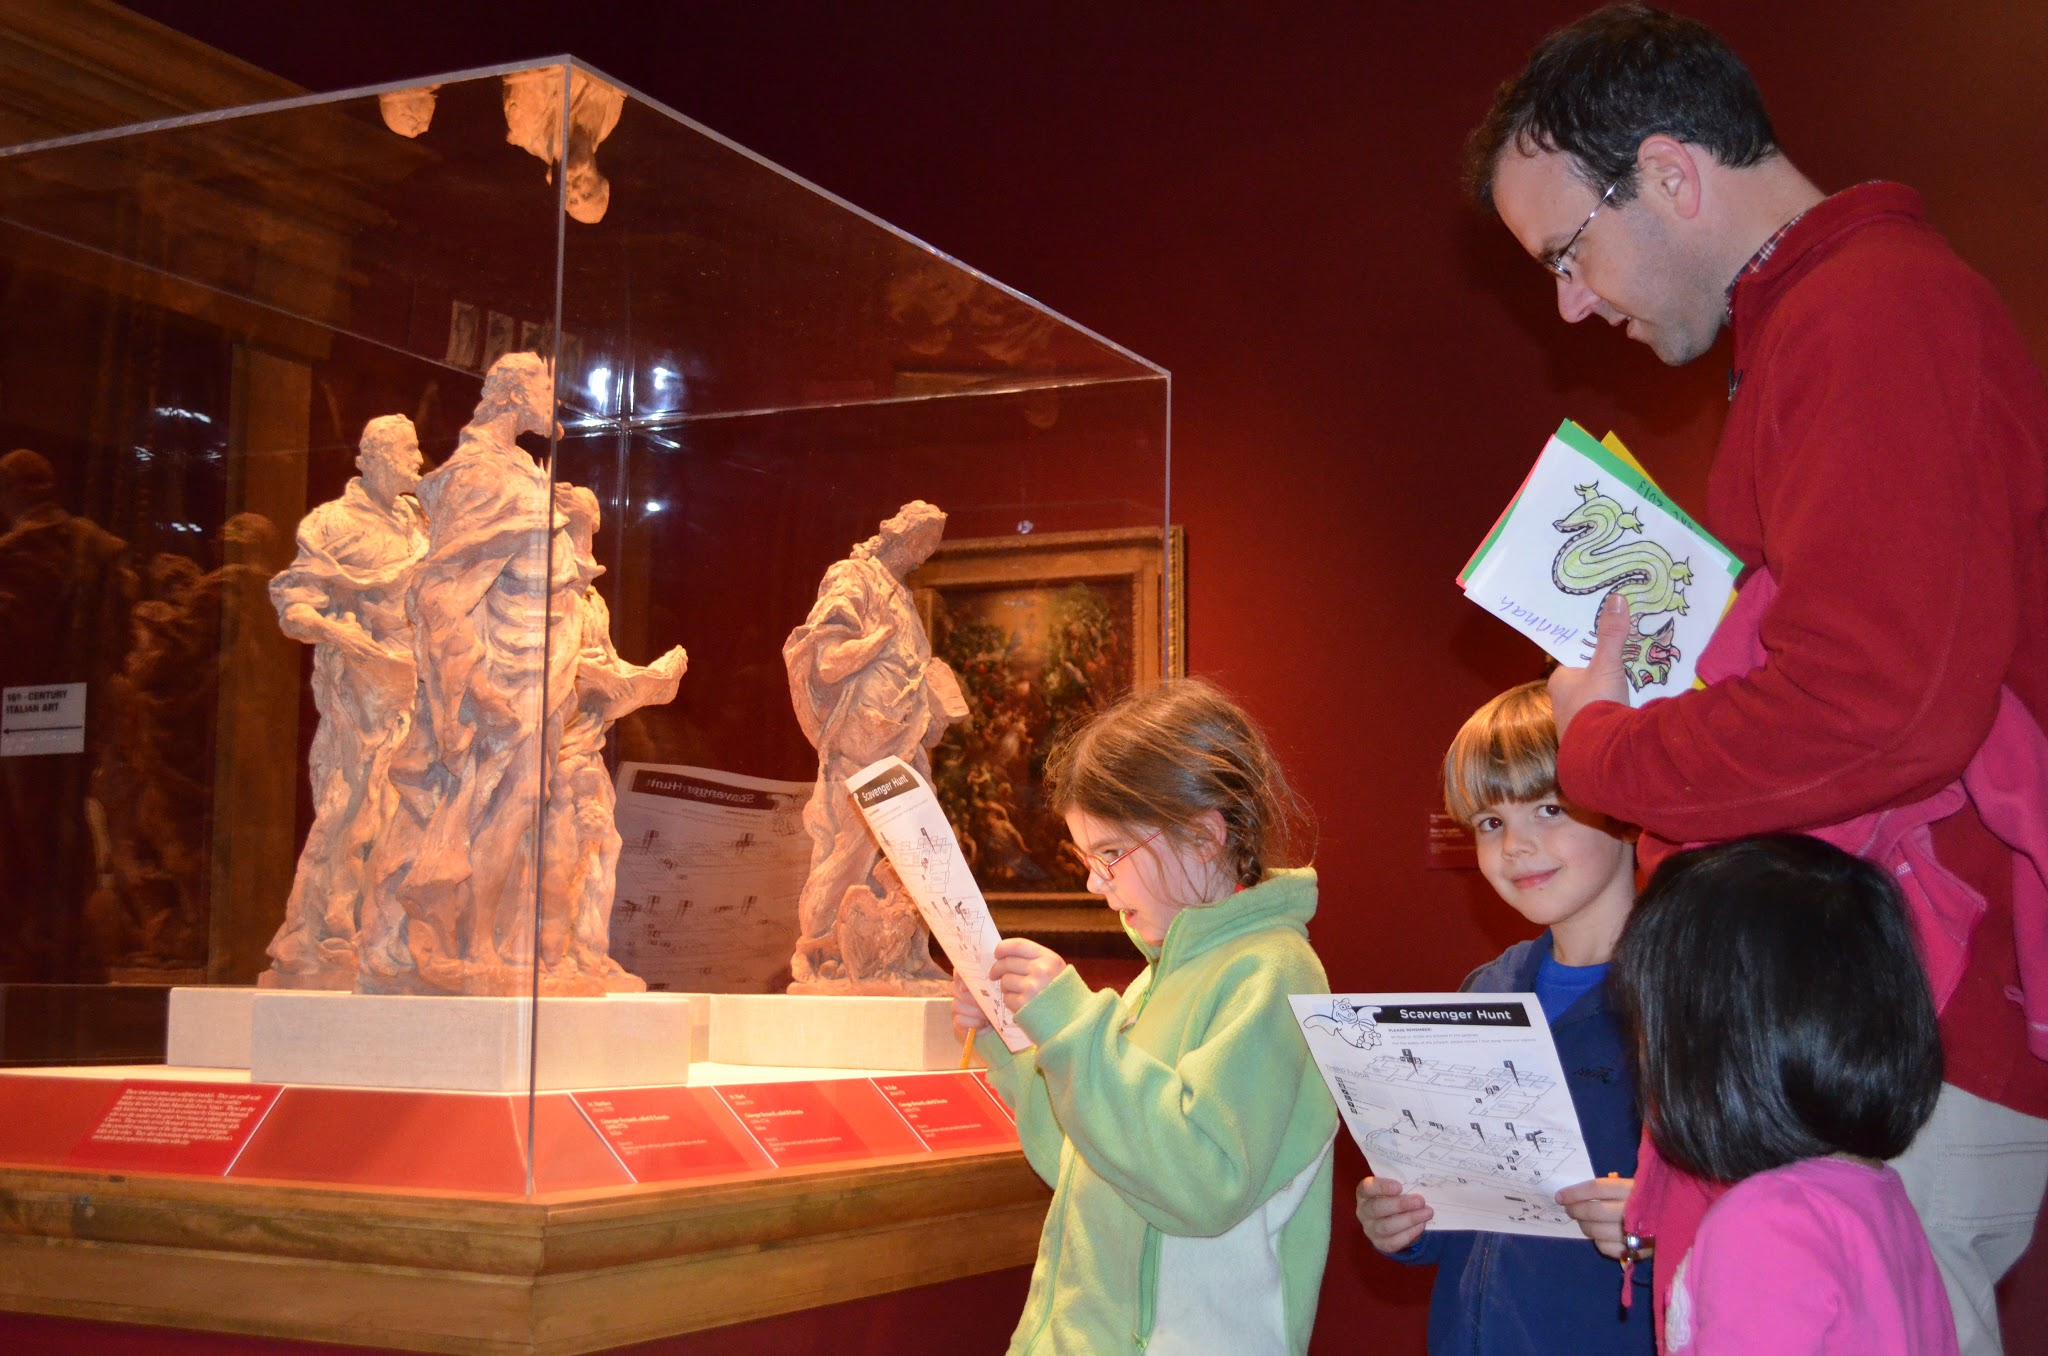 A family viewing sculptures in the gallery.